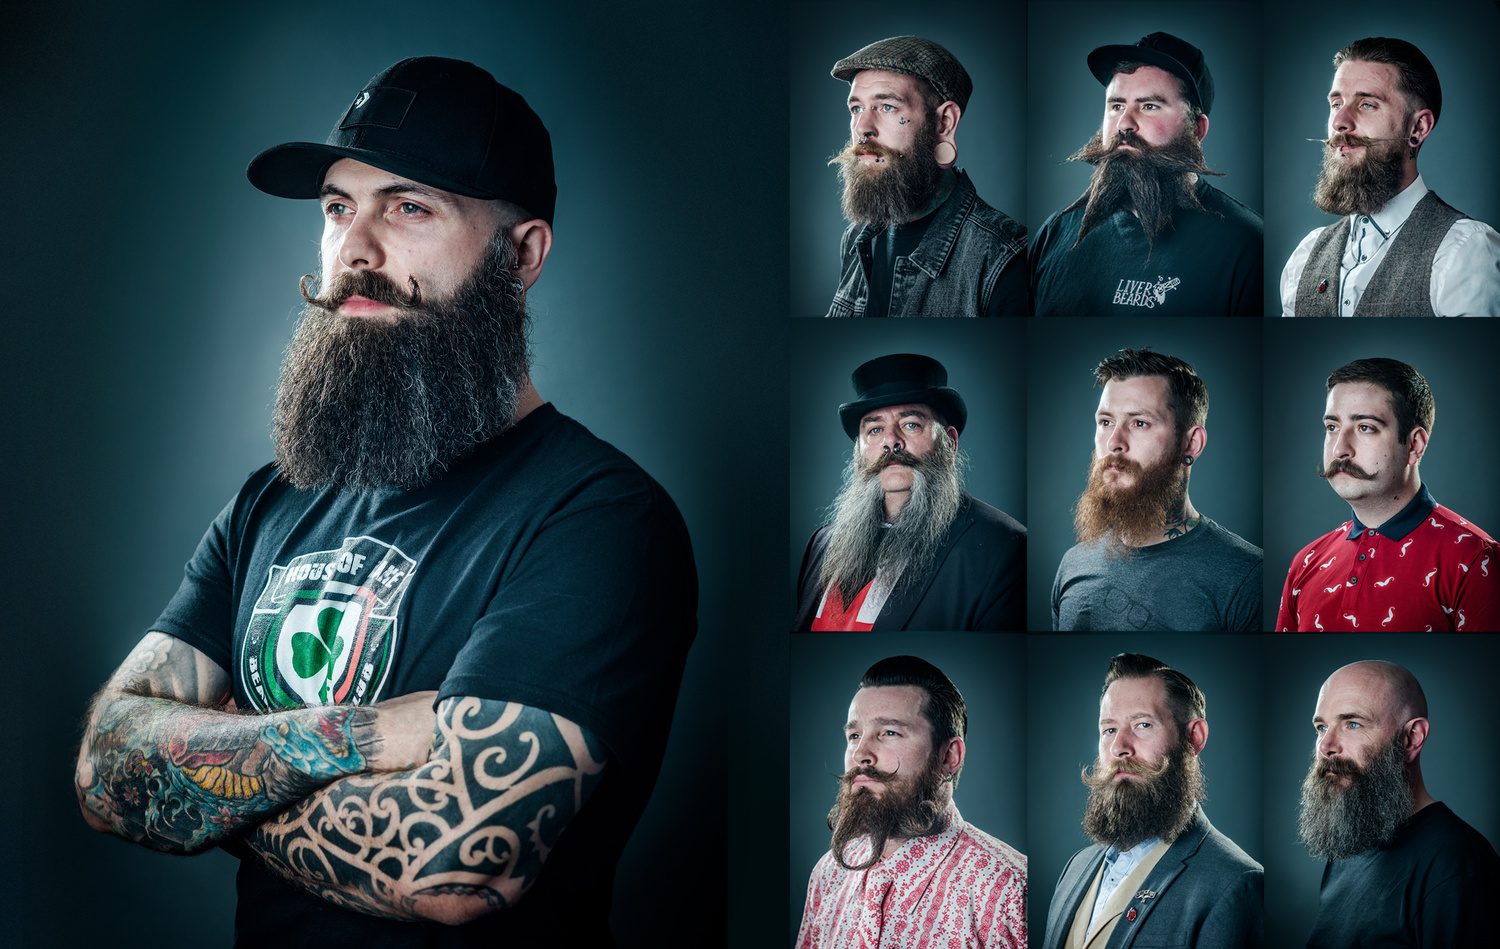 Beard competition portraits by Chris Doyle